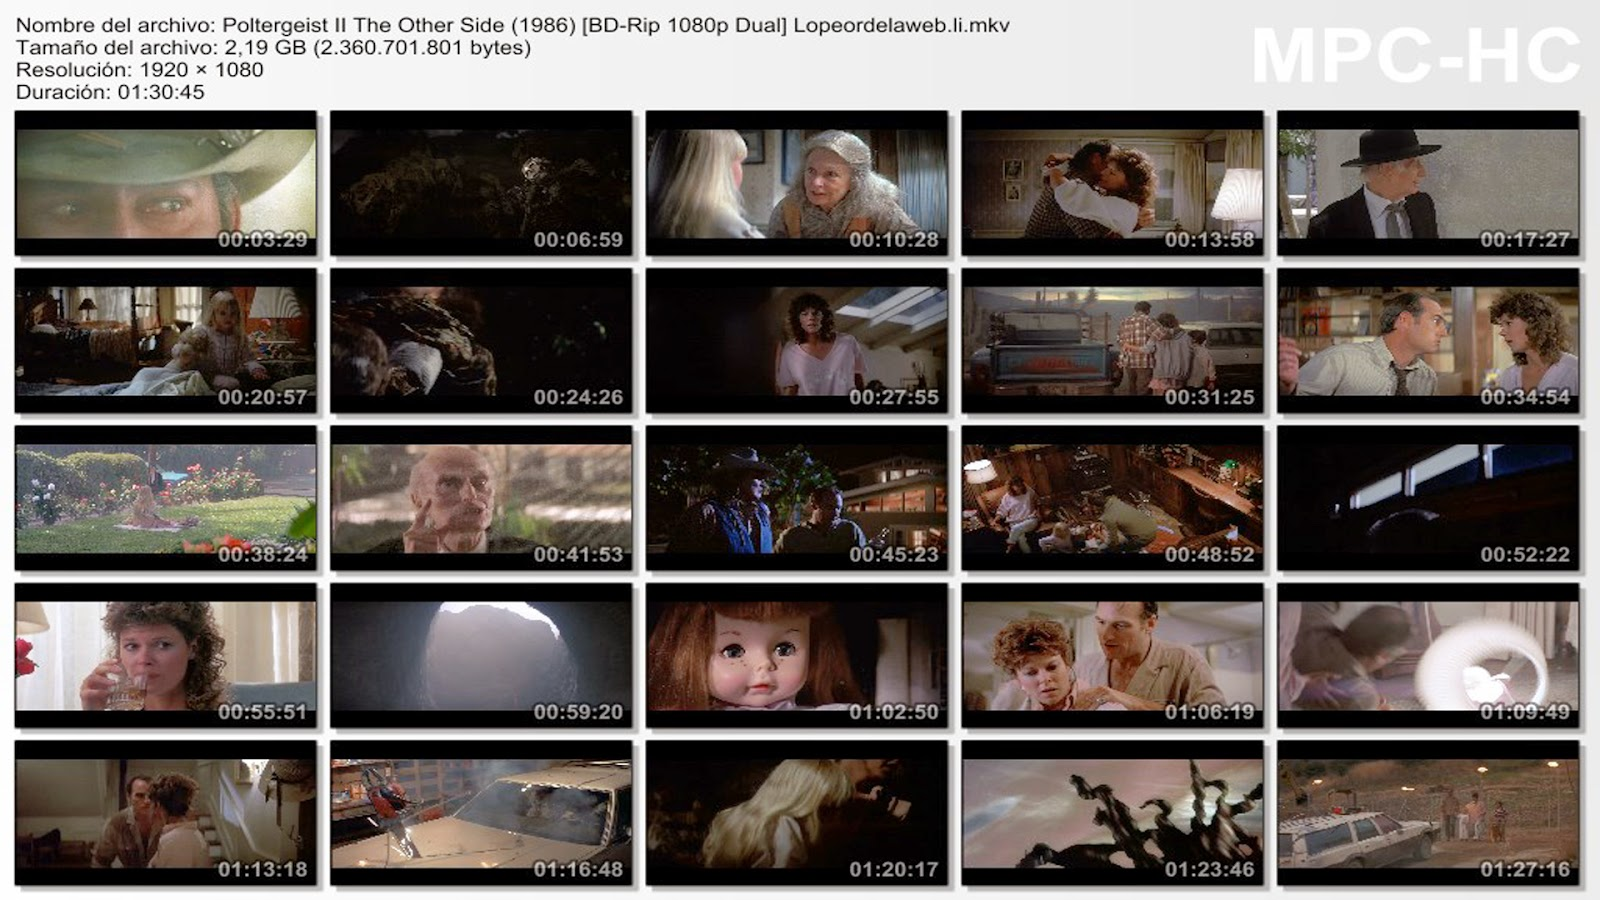 Poltergeist II: The Other Side |1986 |1080p.|Dual |Latino